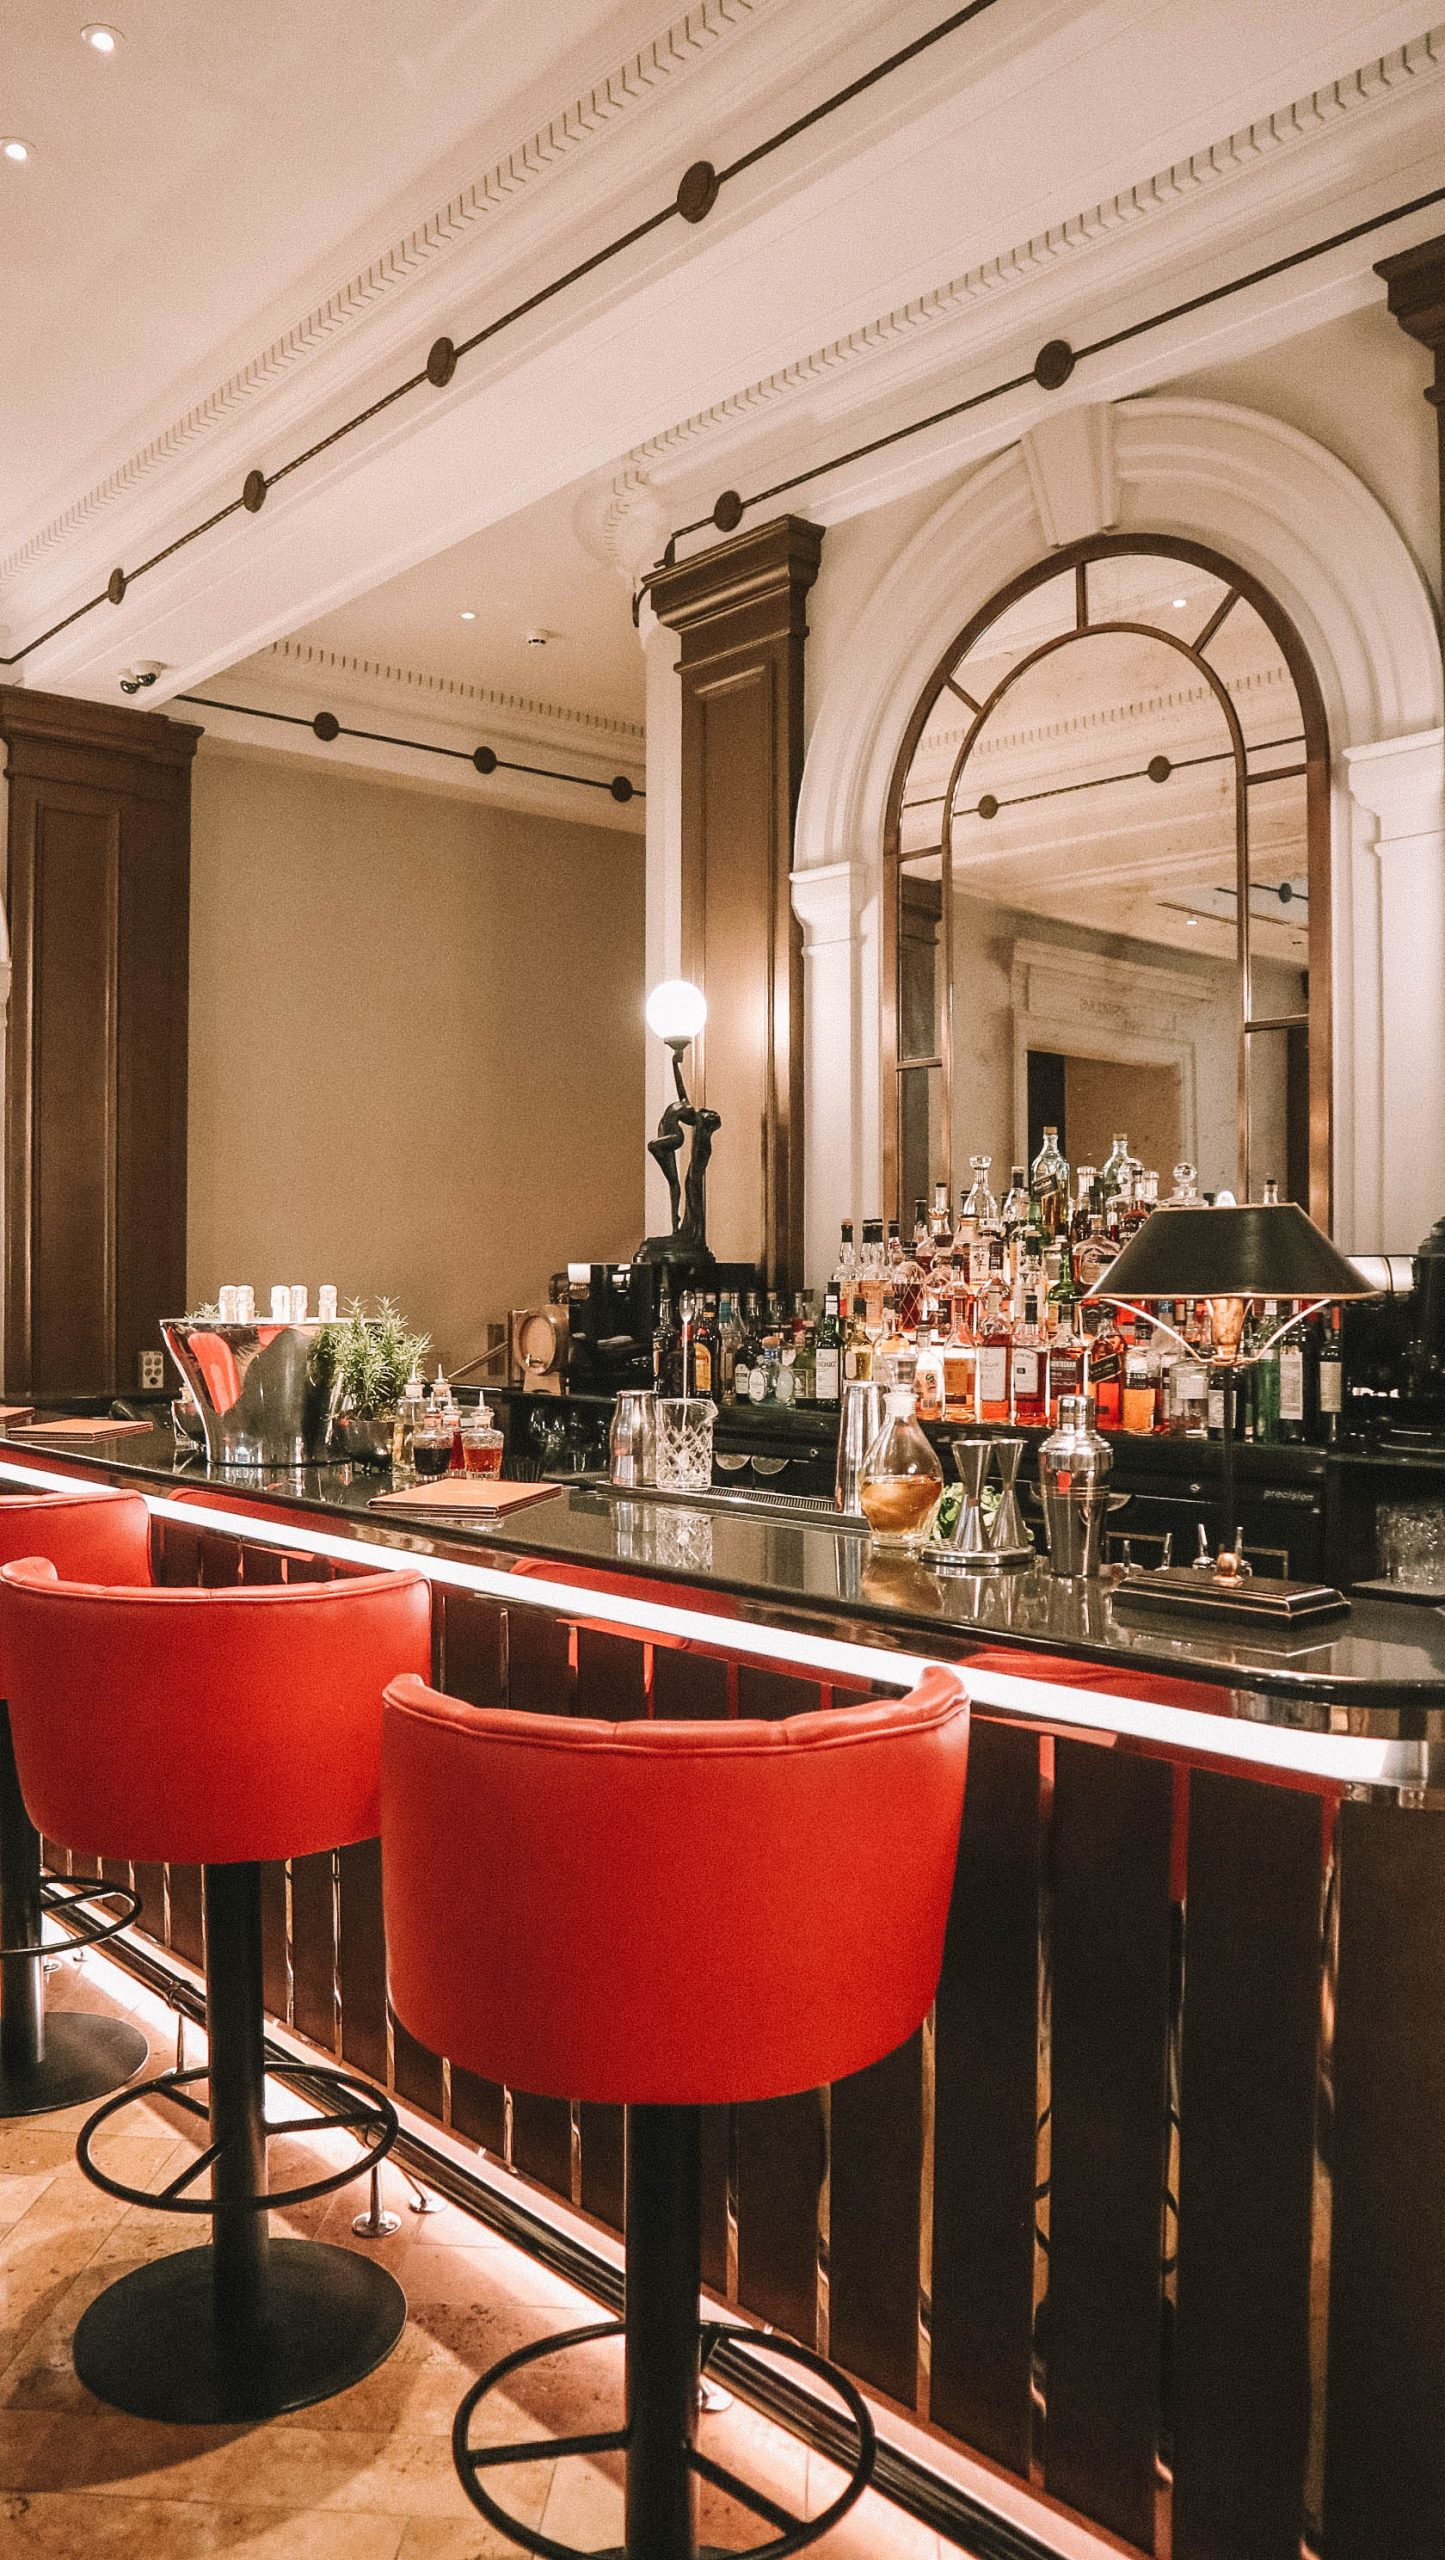 palm court bar in the sheraton hotel mayfair